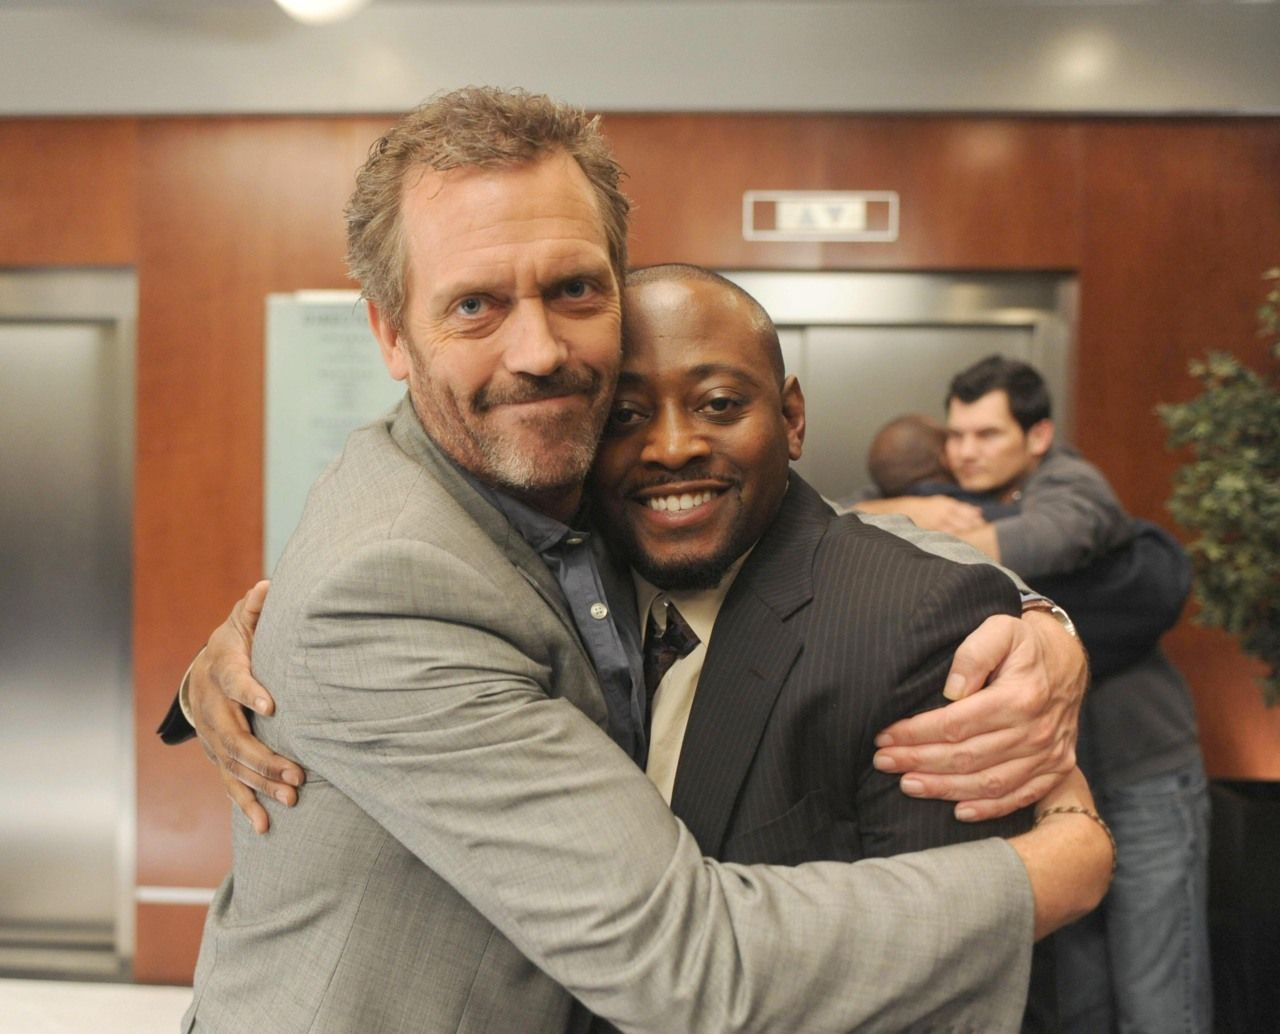 house md miss it oh i miss it so much dr house hugh rh pinterest com